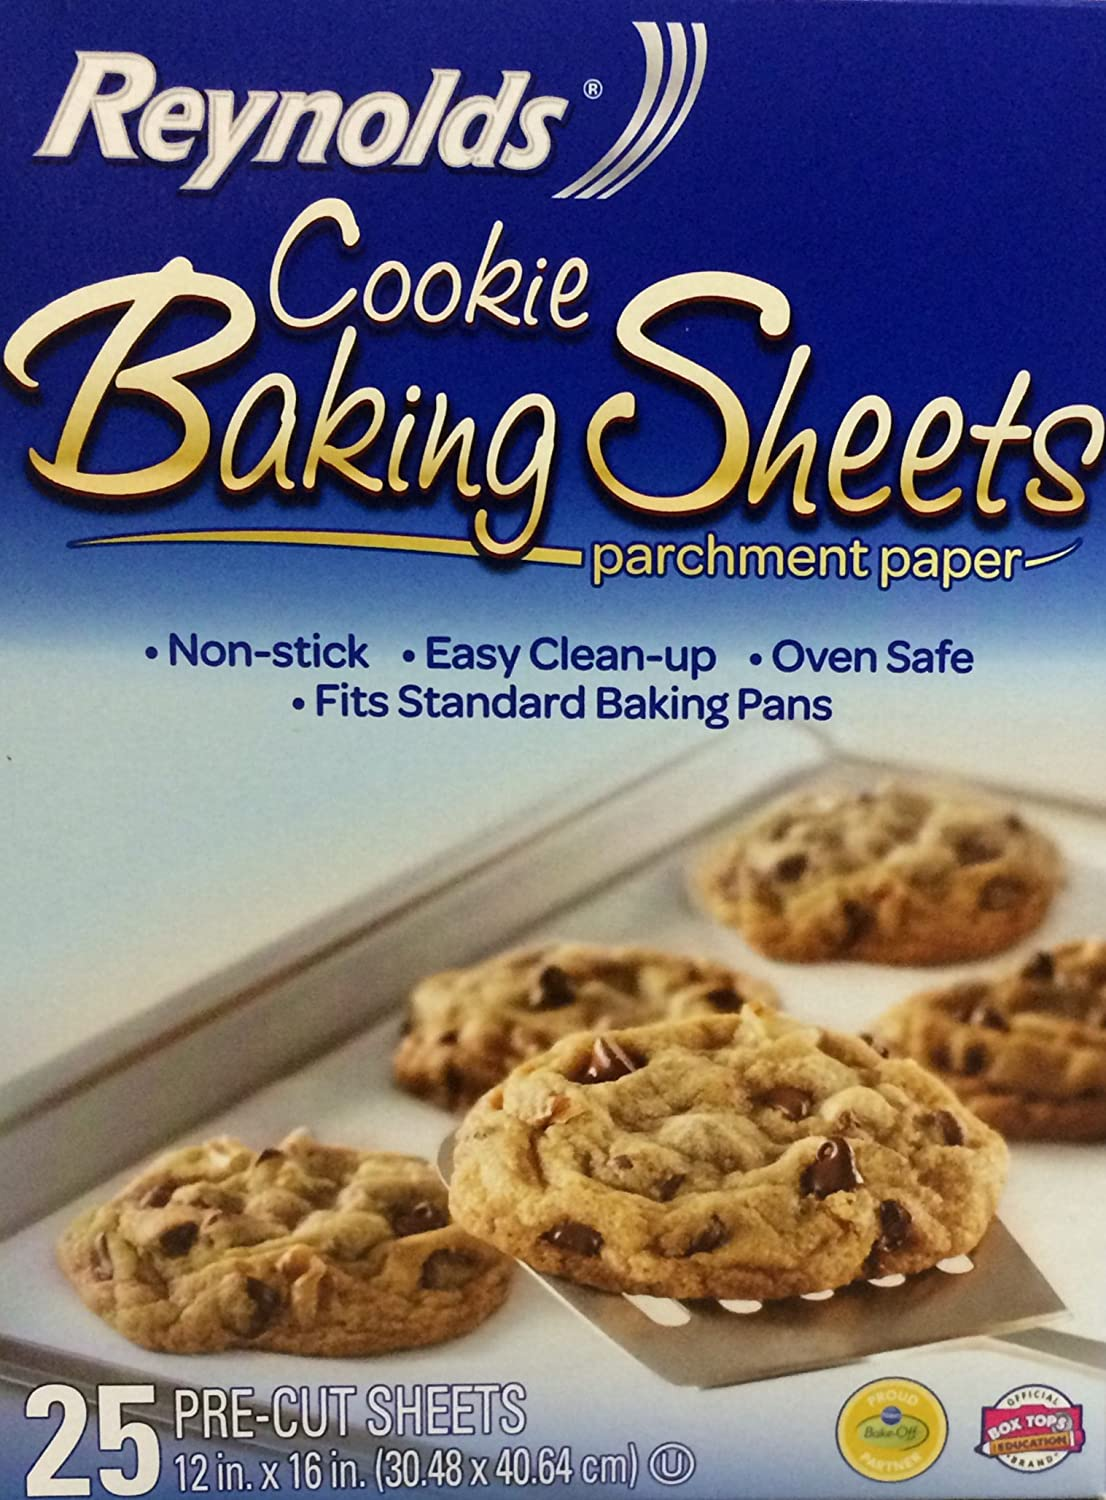 Reynolds Consumer Cookie Baking Sheets Non-stick Parchment Paper, 75 Count (3 Boxes Of 25 Sheets)